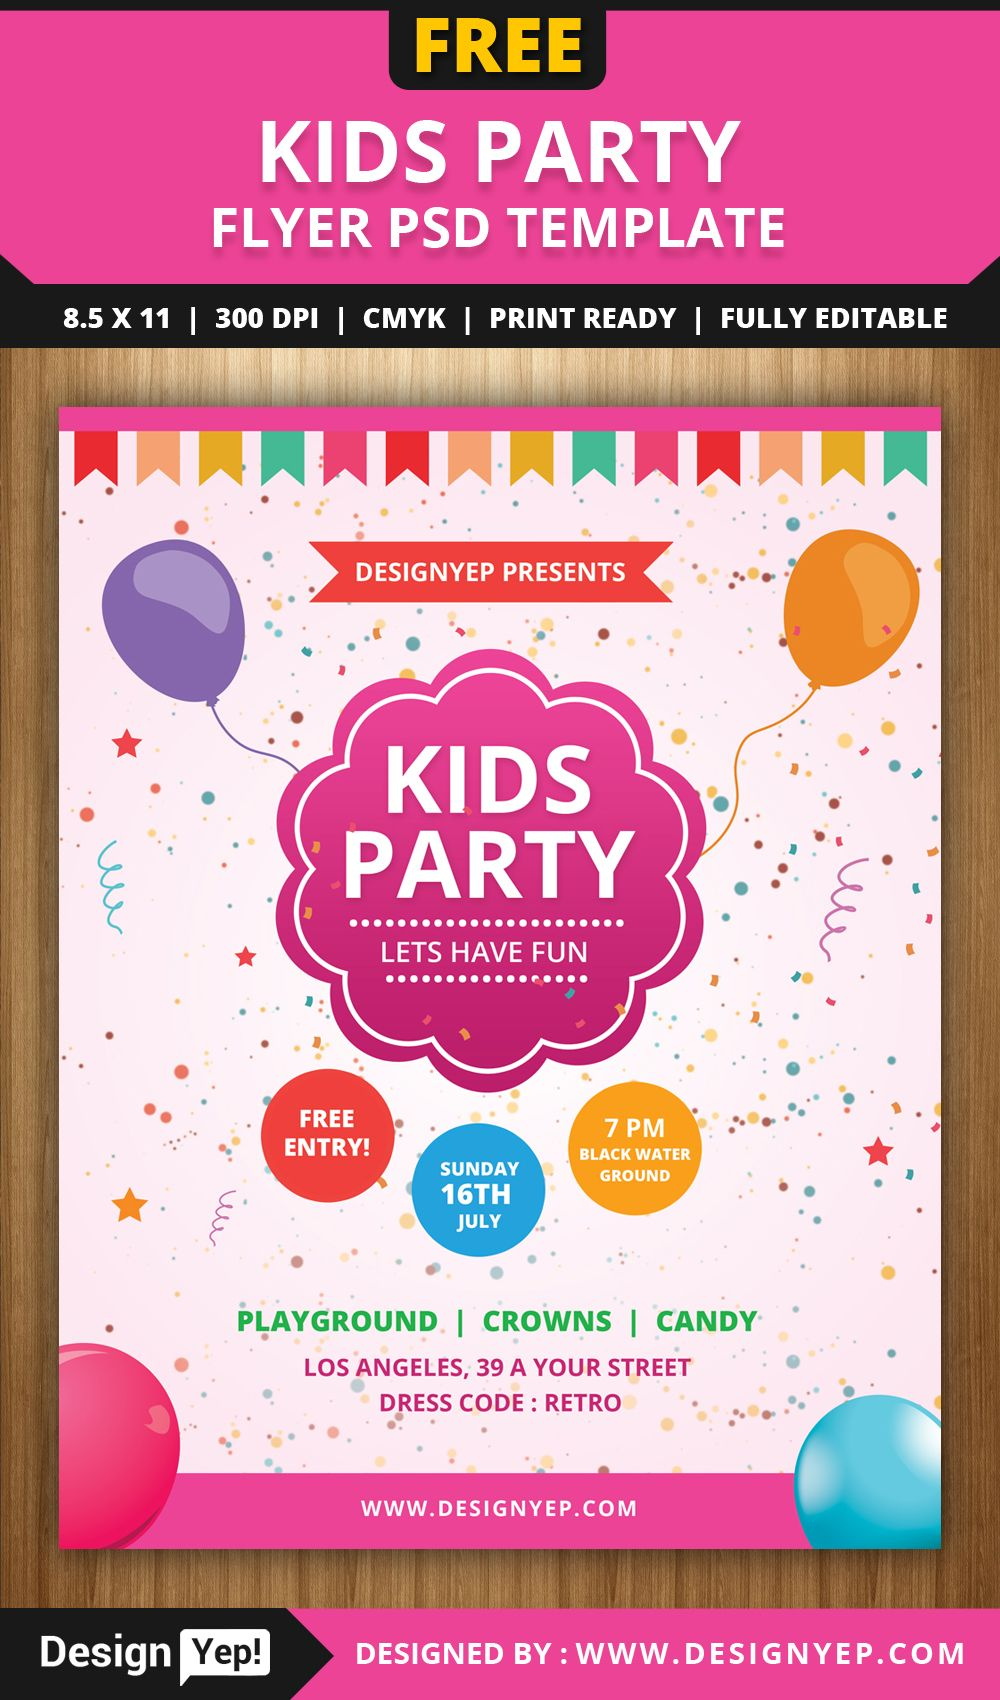 Free Kids Party Flyer Psd Template  Free Flyers